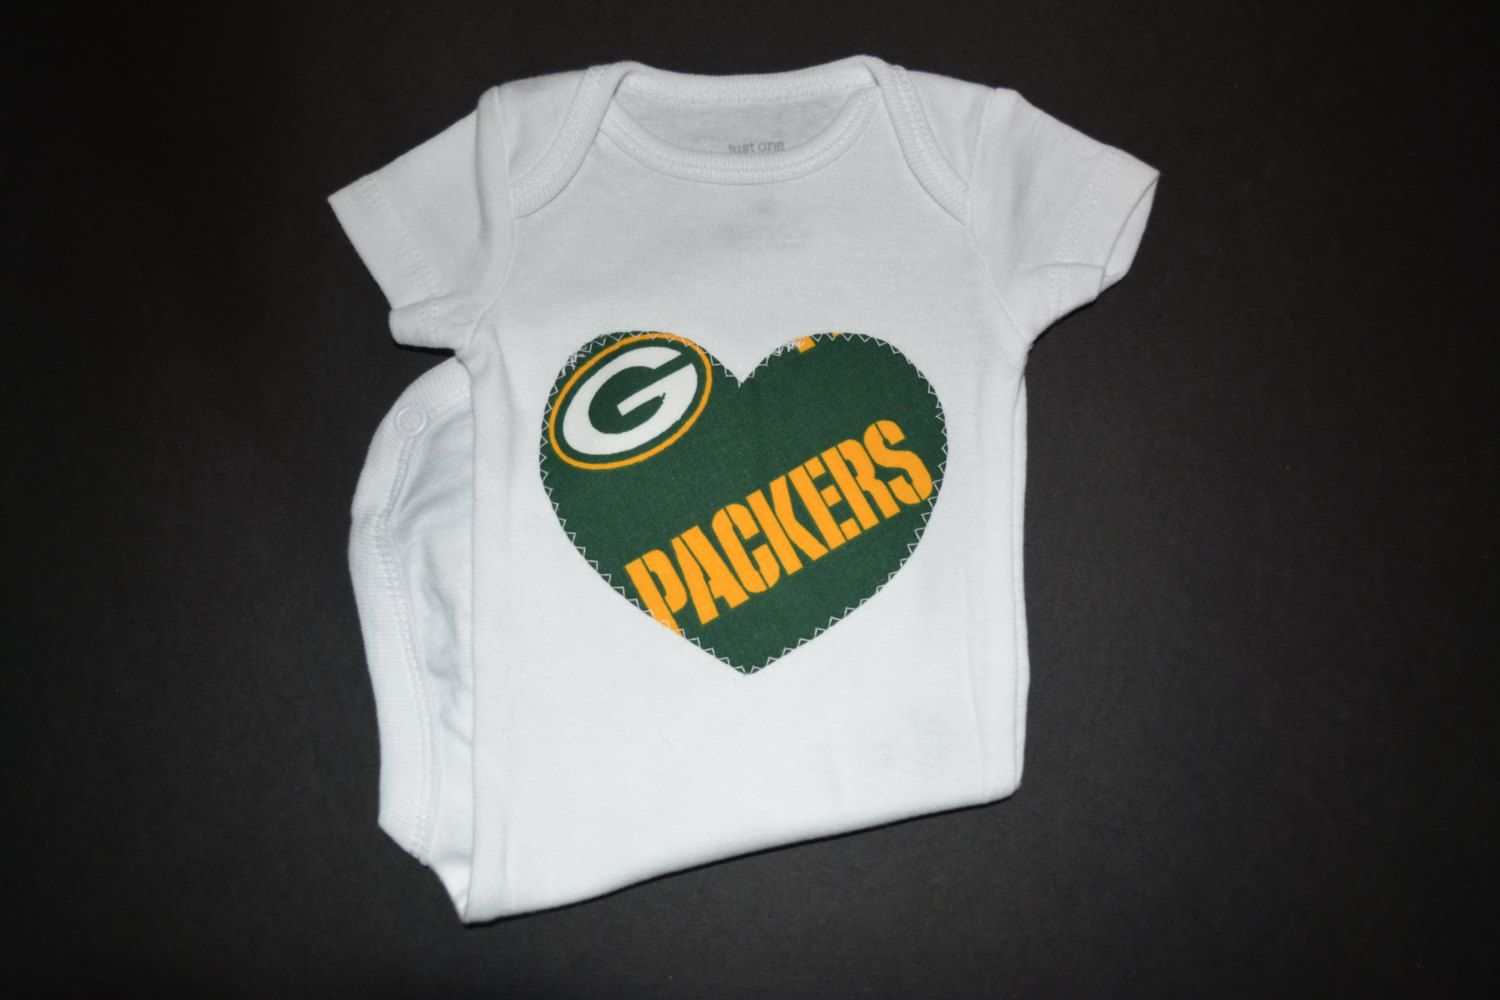 Green Bay Packers Baby Green Bay Packers Outfit Packers Kids Clothes Green Bay Packers Green Bay Packers Clothing Green Bay Packers Shirts Heart Bodysuit